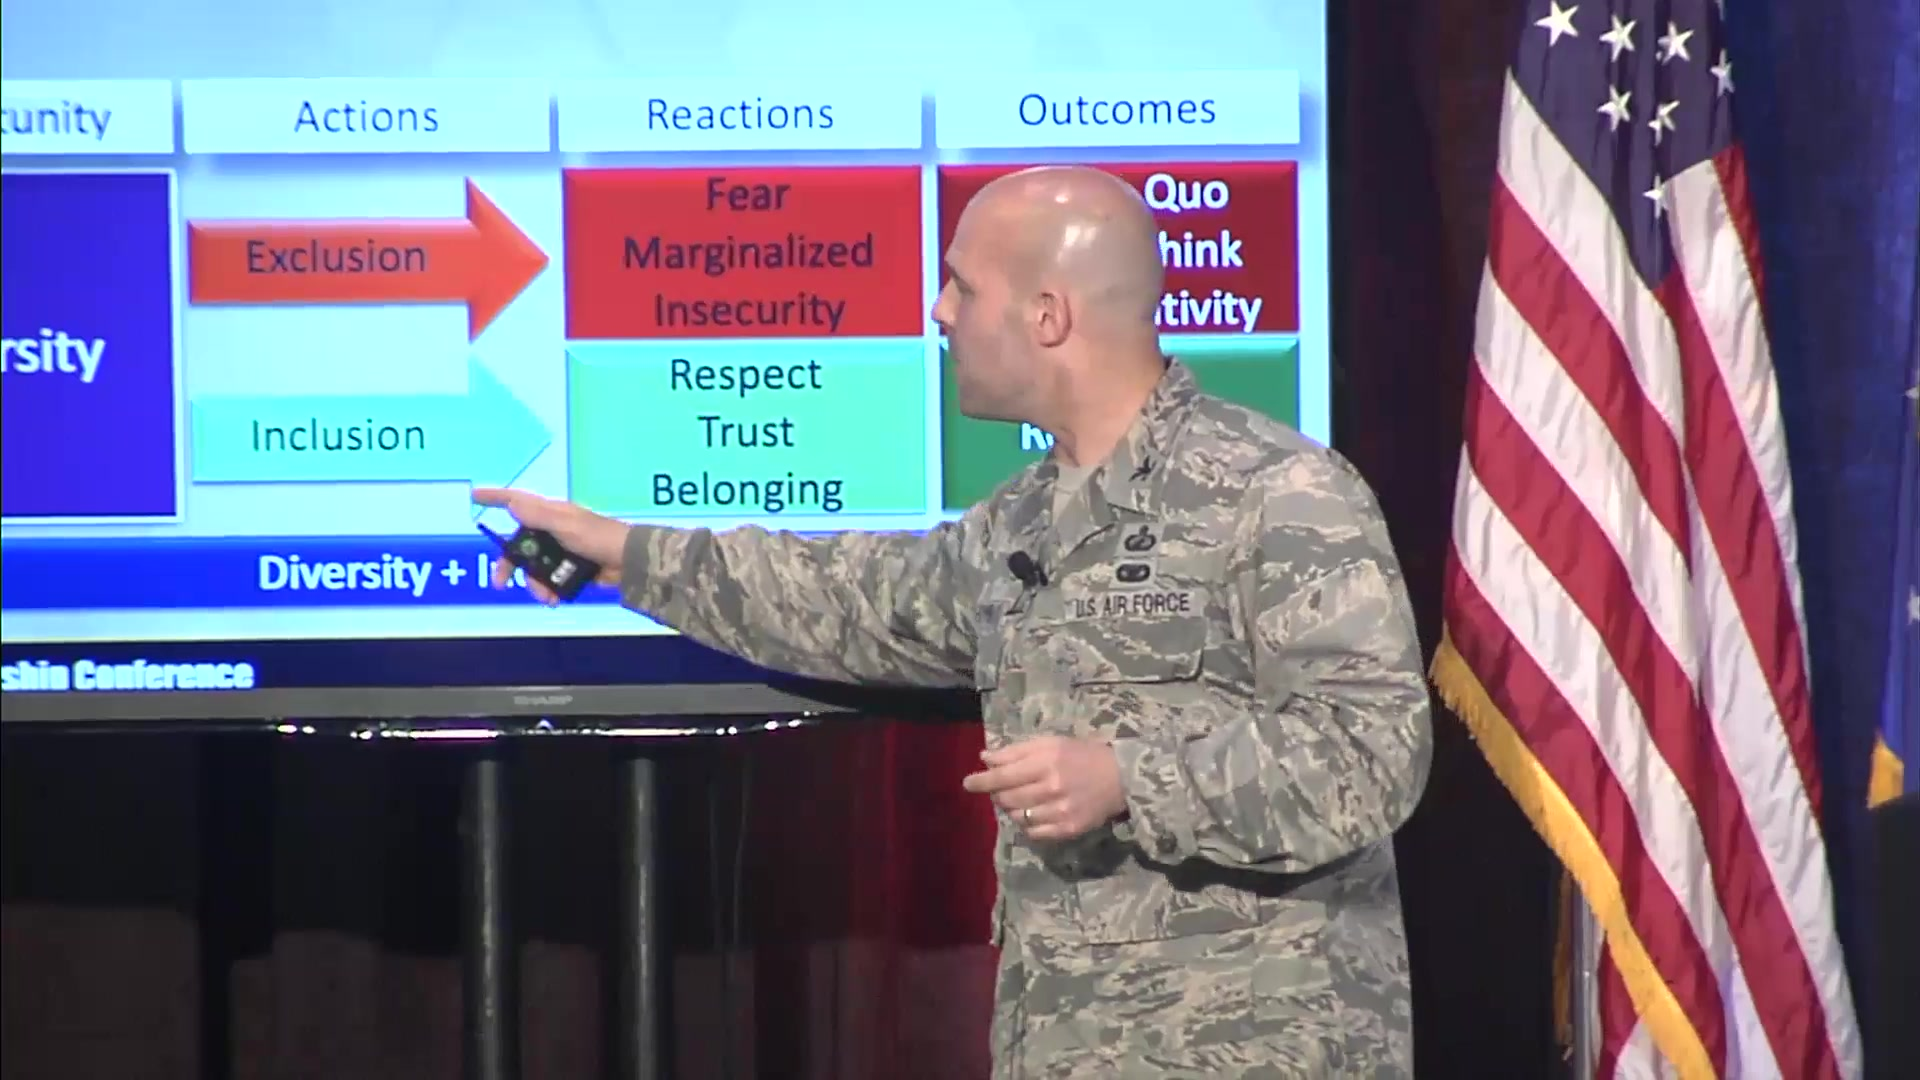 Col Kenneth Lozano, ANG Chief of Diversity, breaks down the different aspects of Diversity and Inclusion and how it impacts ANG mission effectiveness.